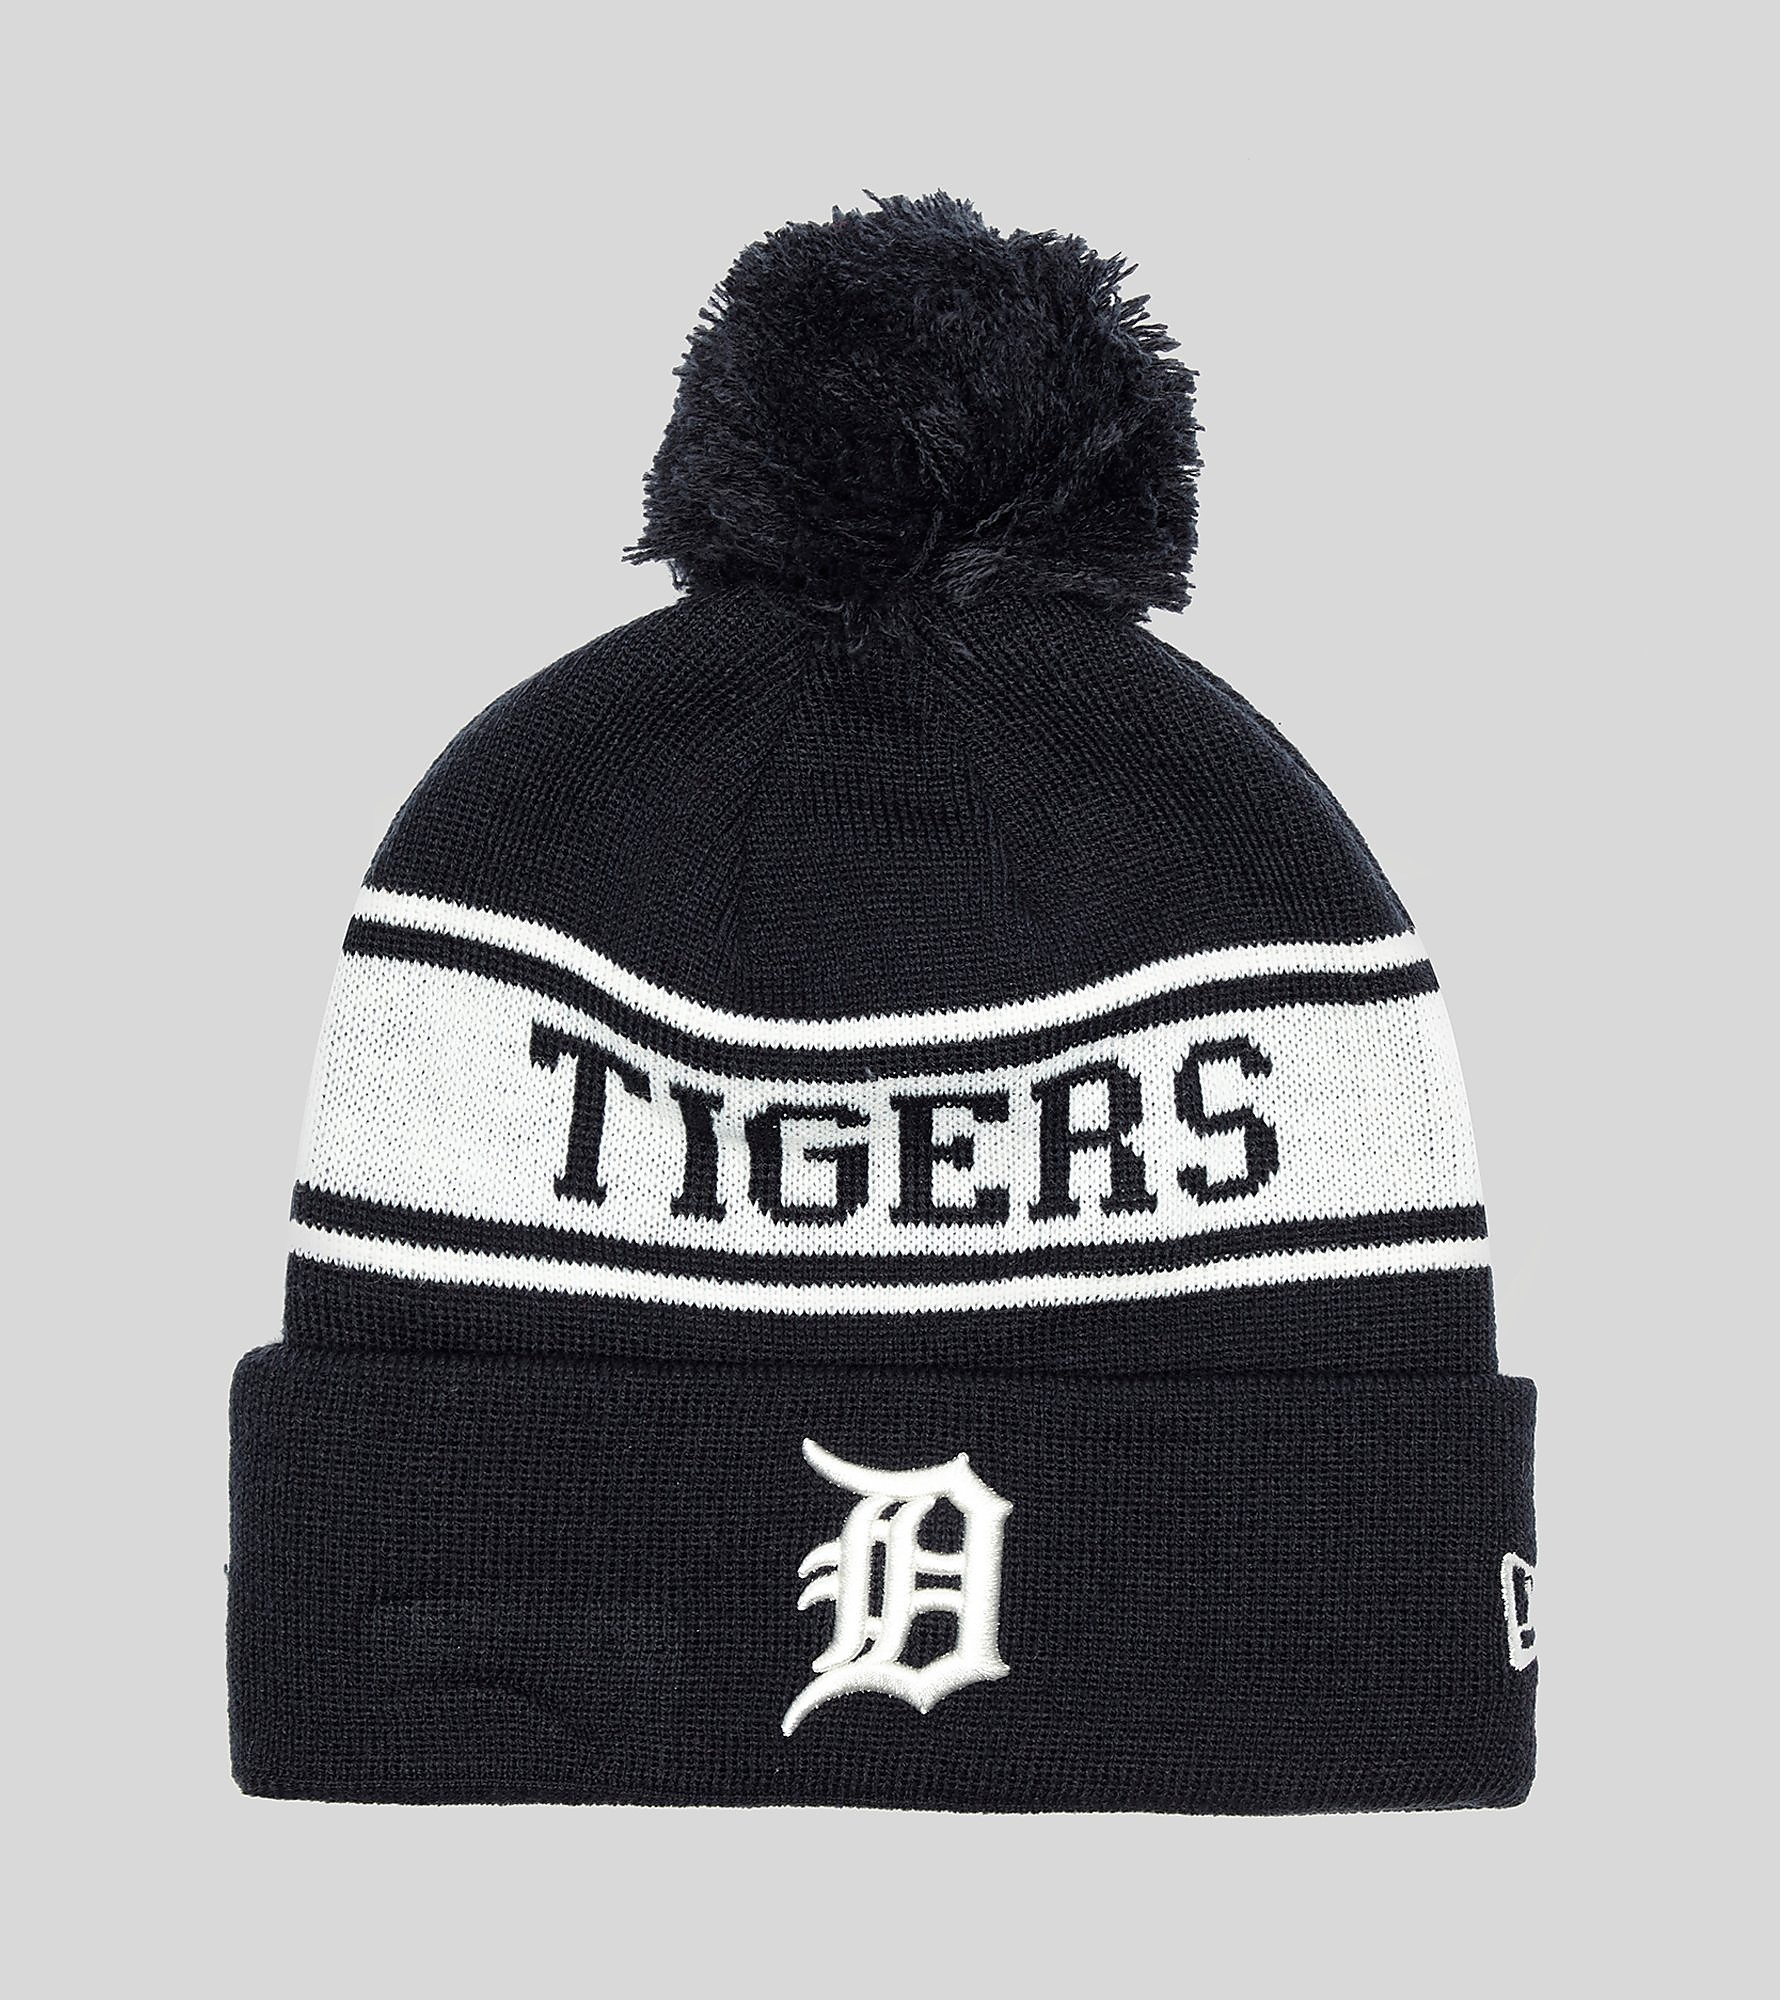 New Era Bonnet Detroit Tigers - Exclusivité size?